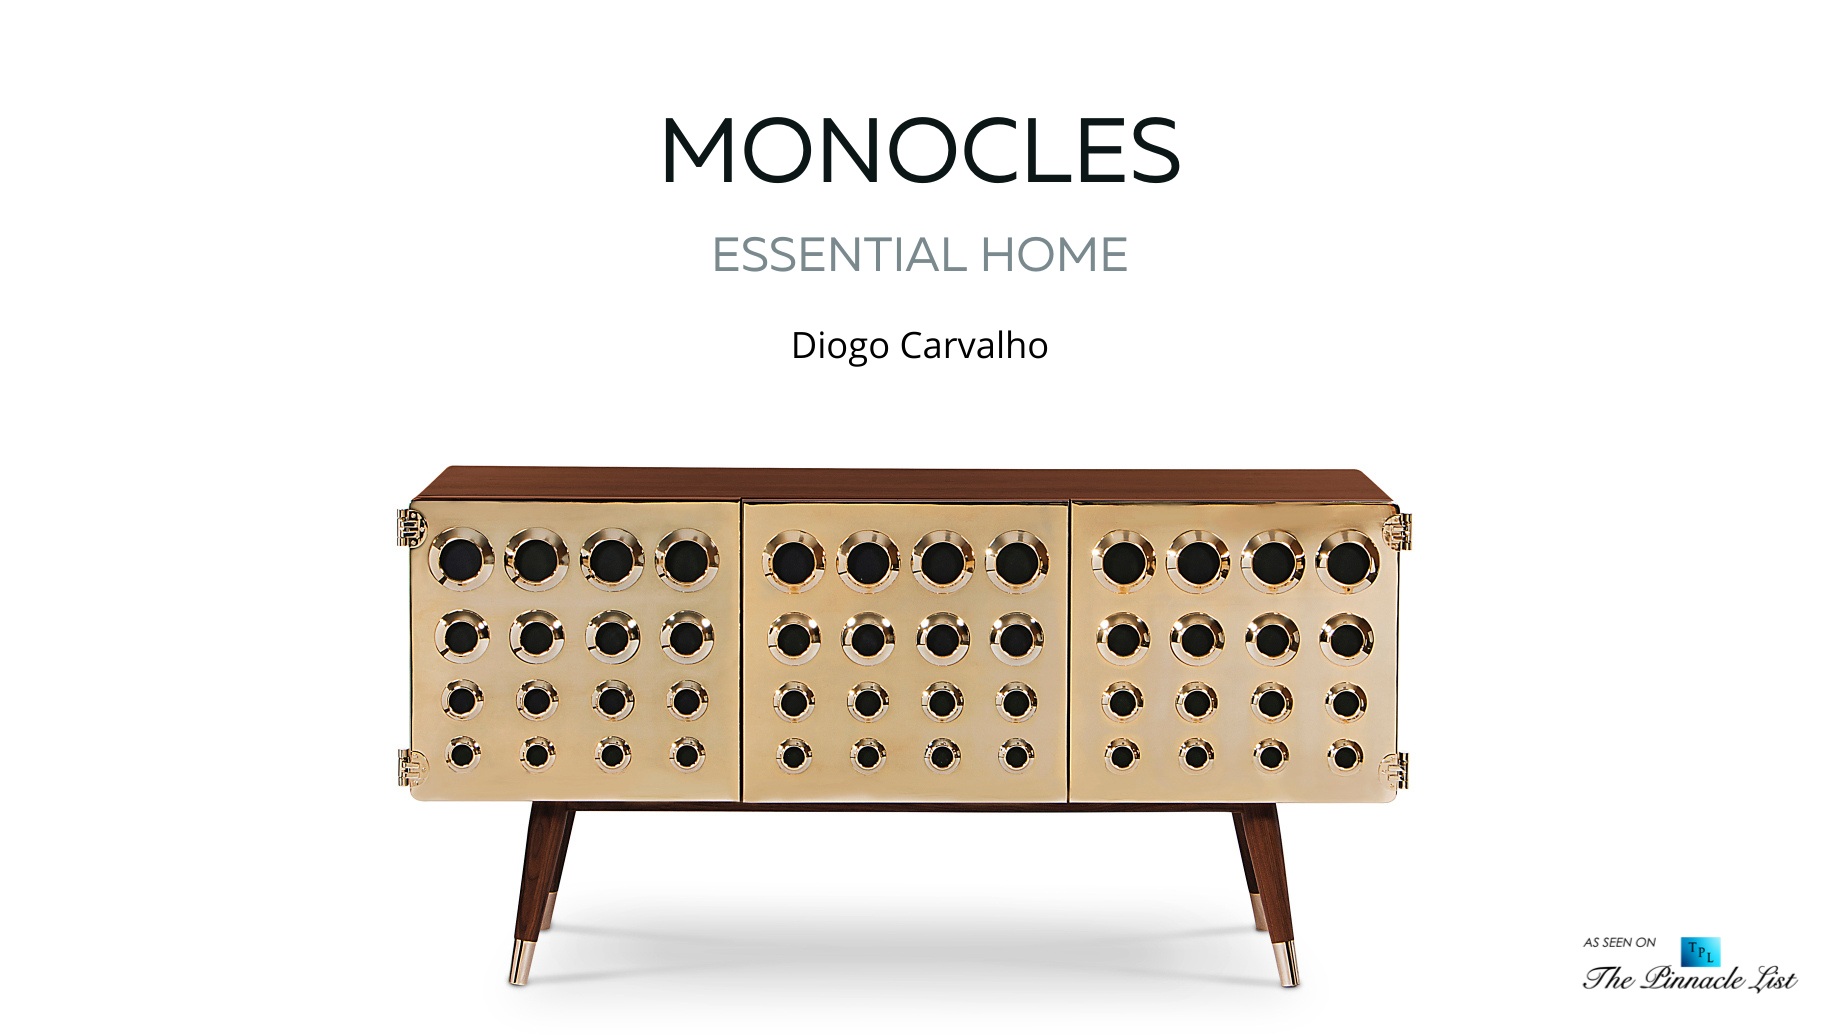 MONOCLES Essential Home Collection DelightFULL - Diogo Carvalho